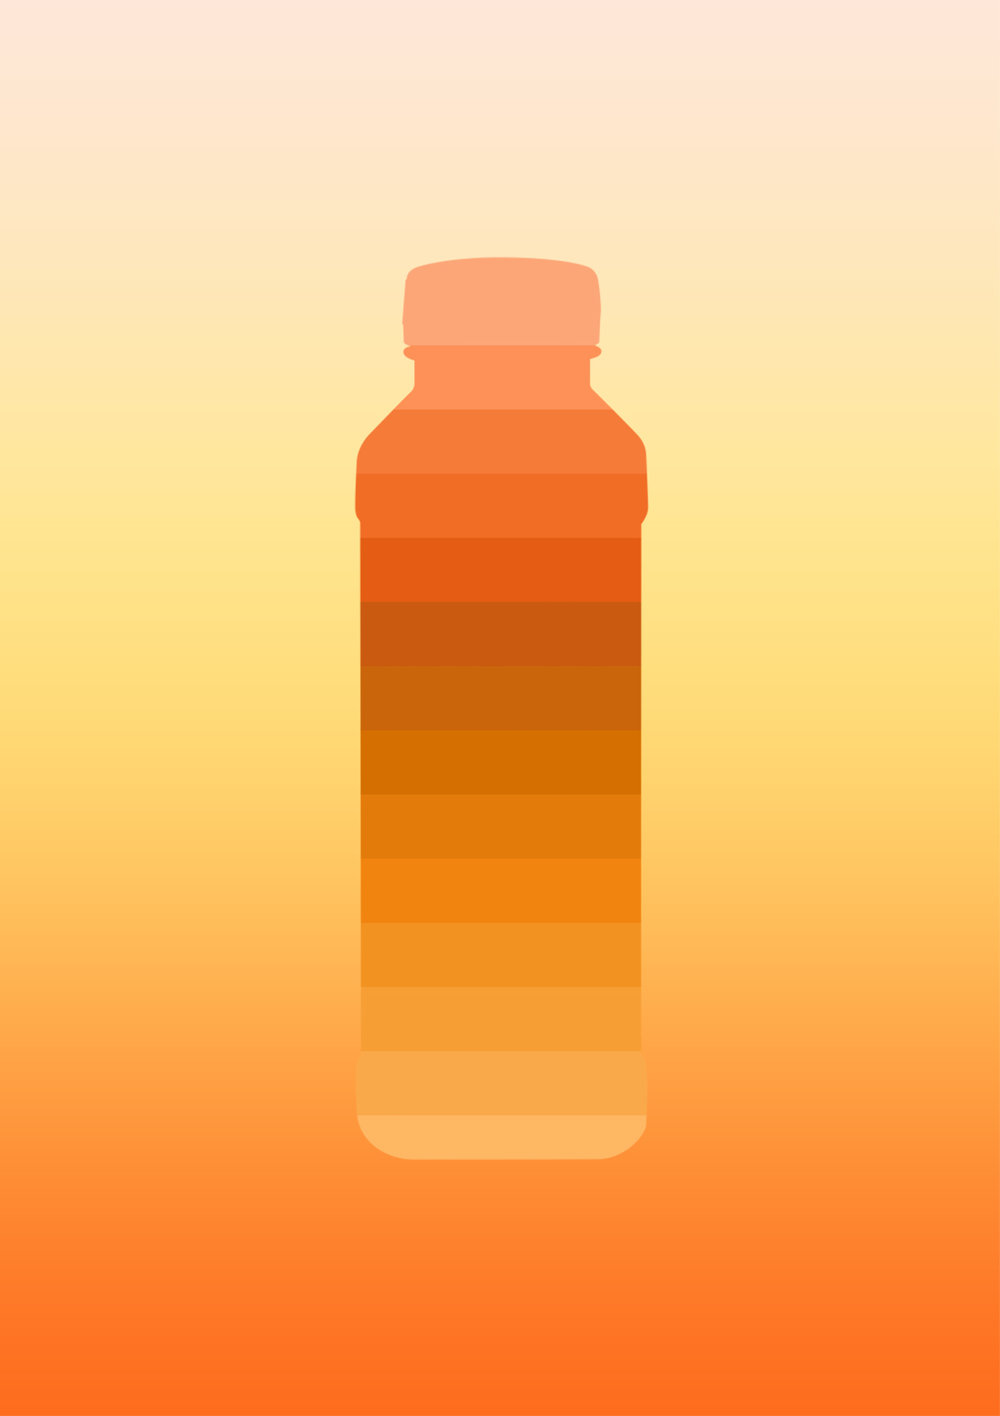 Carrots & Curcuma juice bottle / Illustrations - illustration of a gradient juice bottle inspired by carrots and curcuma